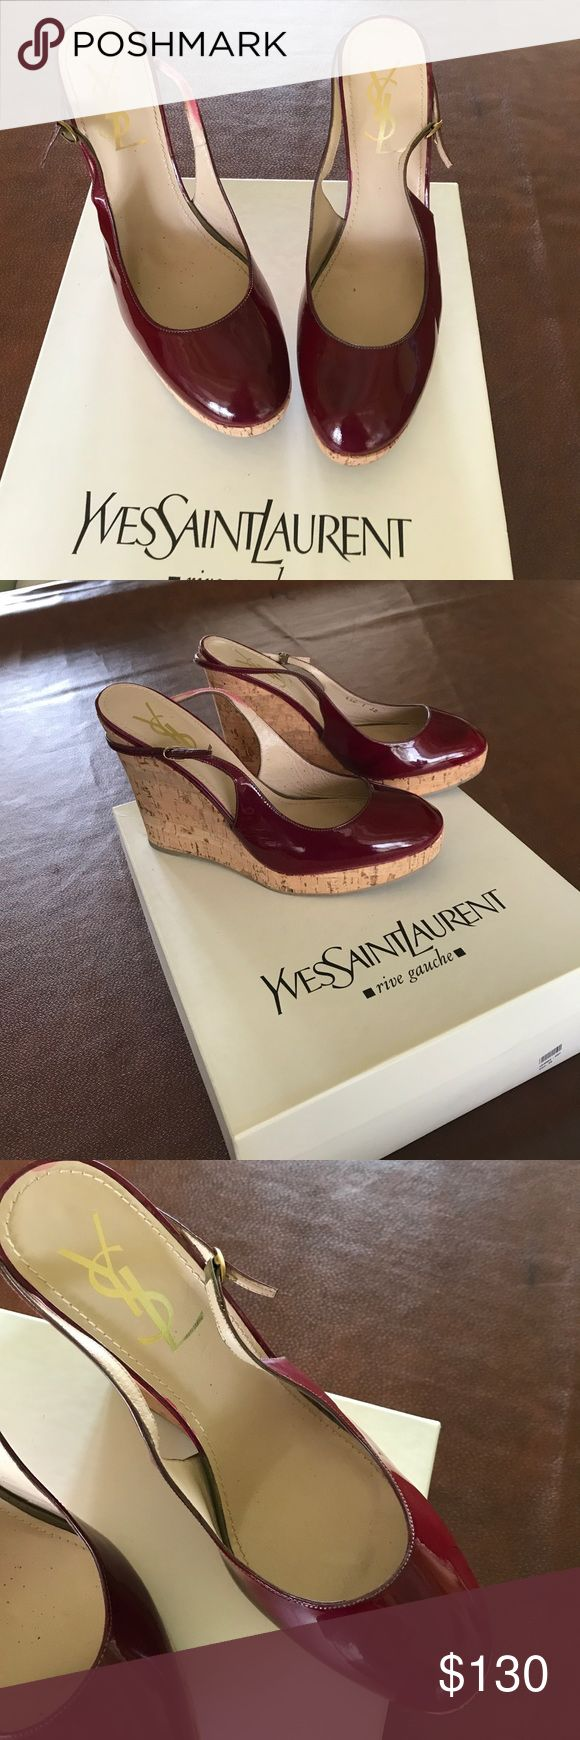 YesSaintLaurent Wedge 👠 Red patent leather shoes with cork wedge heels. New with tags, purchased on sale for $315 reduced from $530.  Not perfect, they have scratches but need to see up close to spot them. Yves Saint Laurent Shoes Wedges